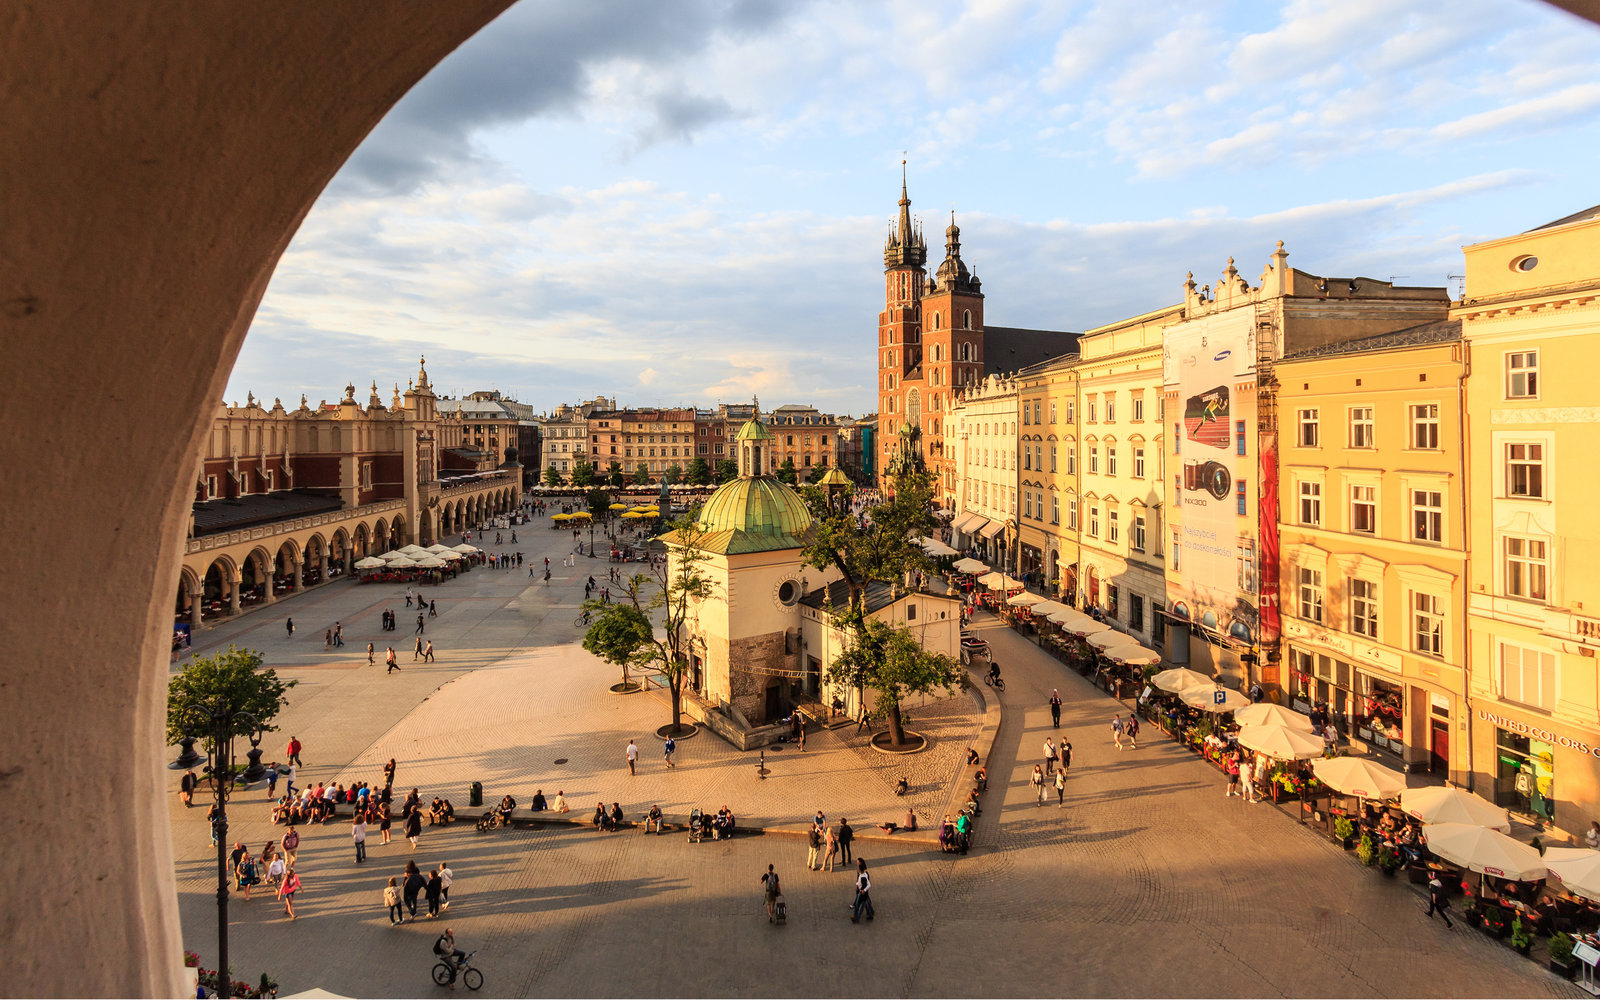 Main Square, Krakow, Poland